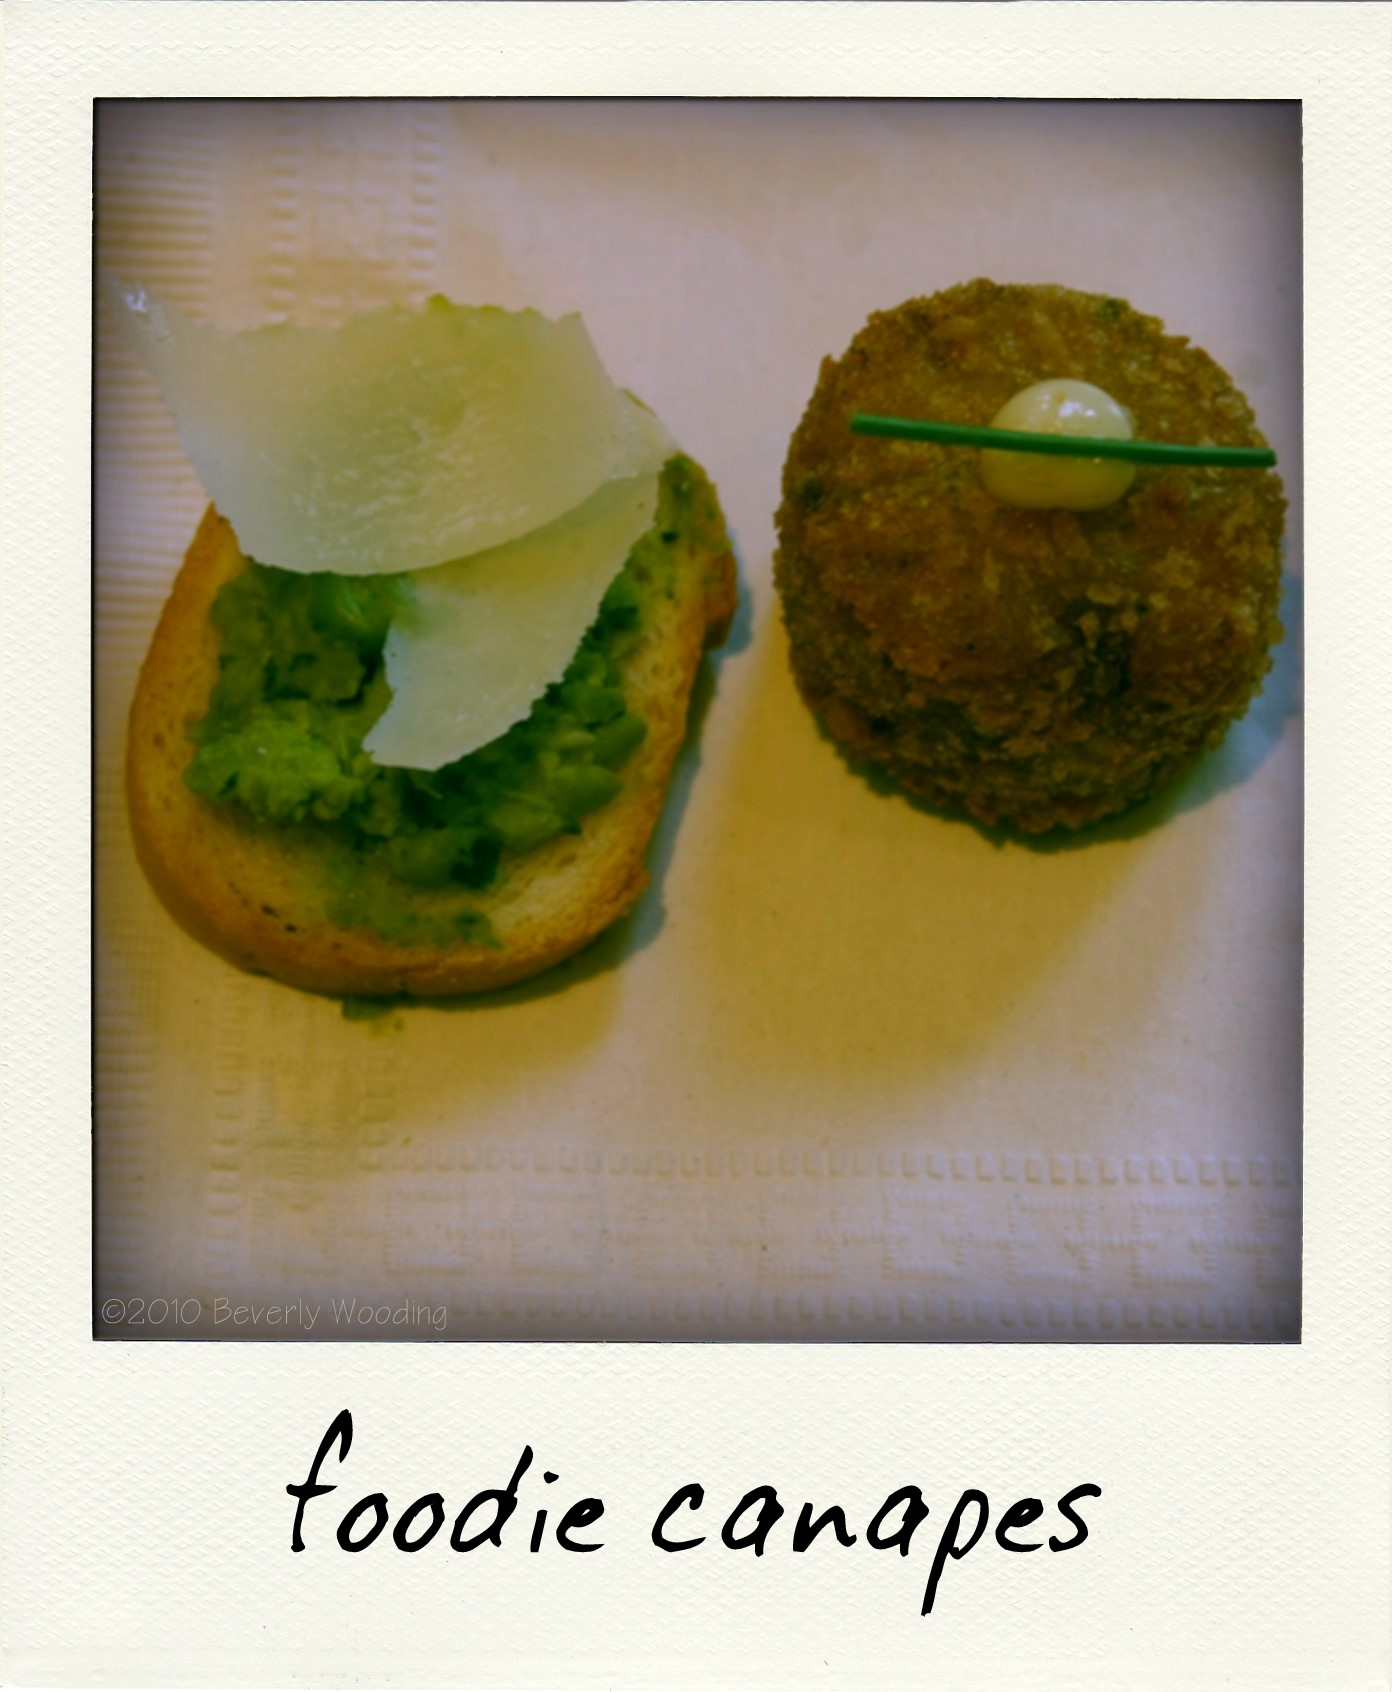 foodie canapes